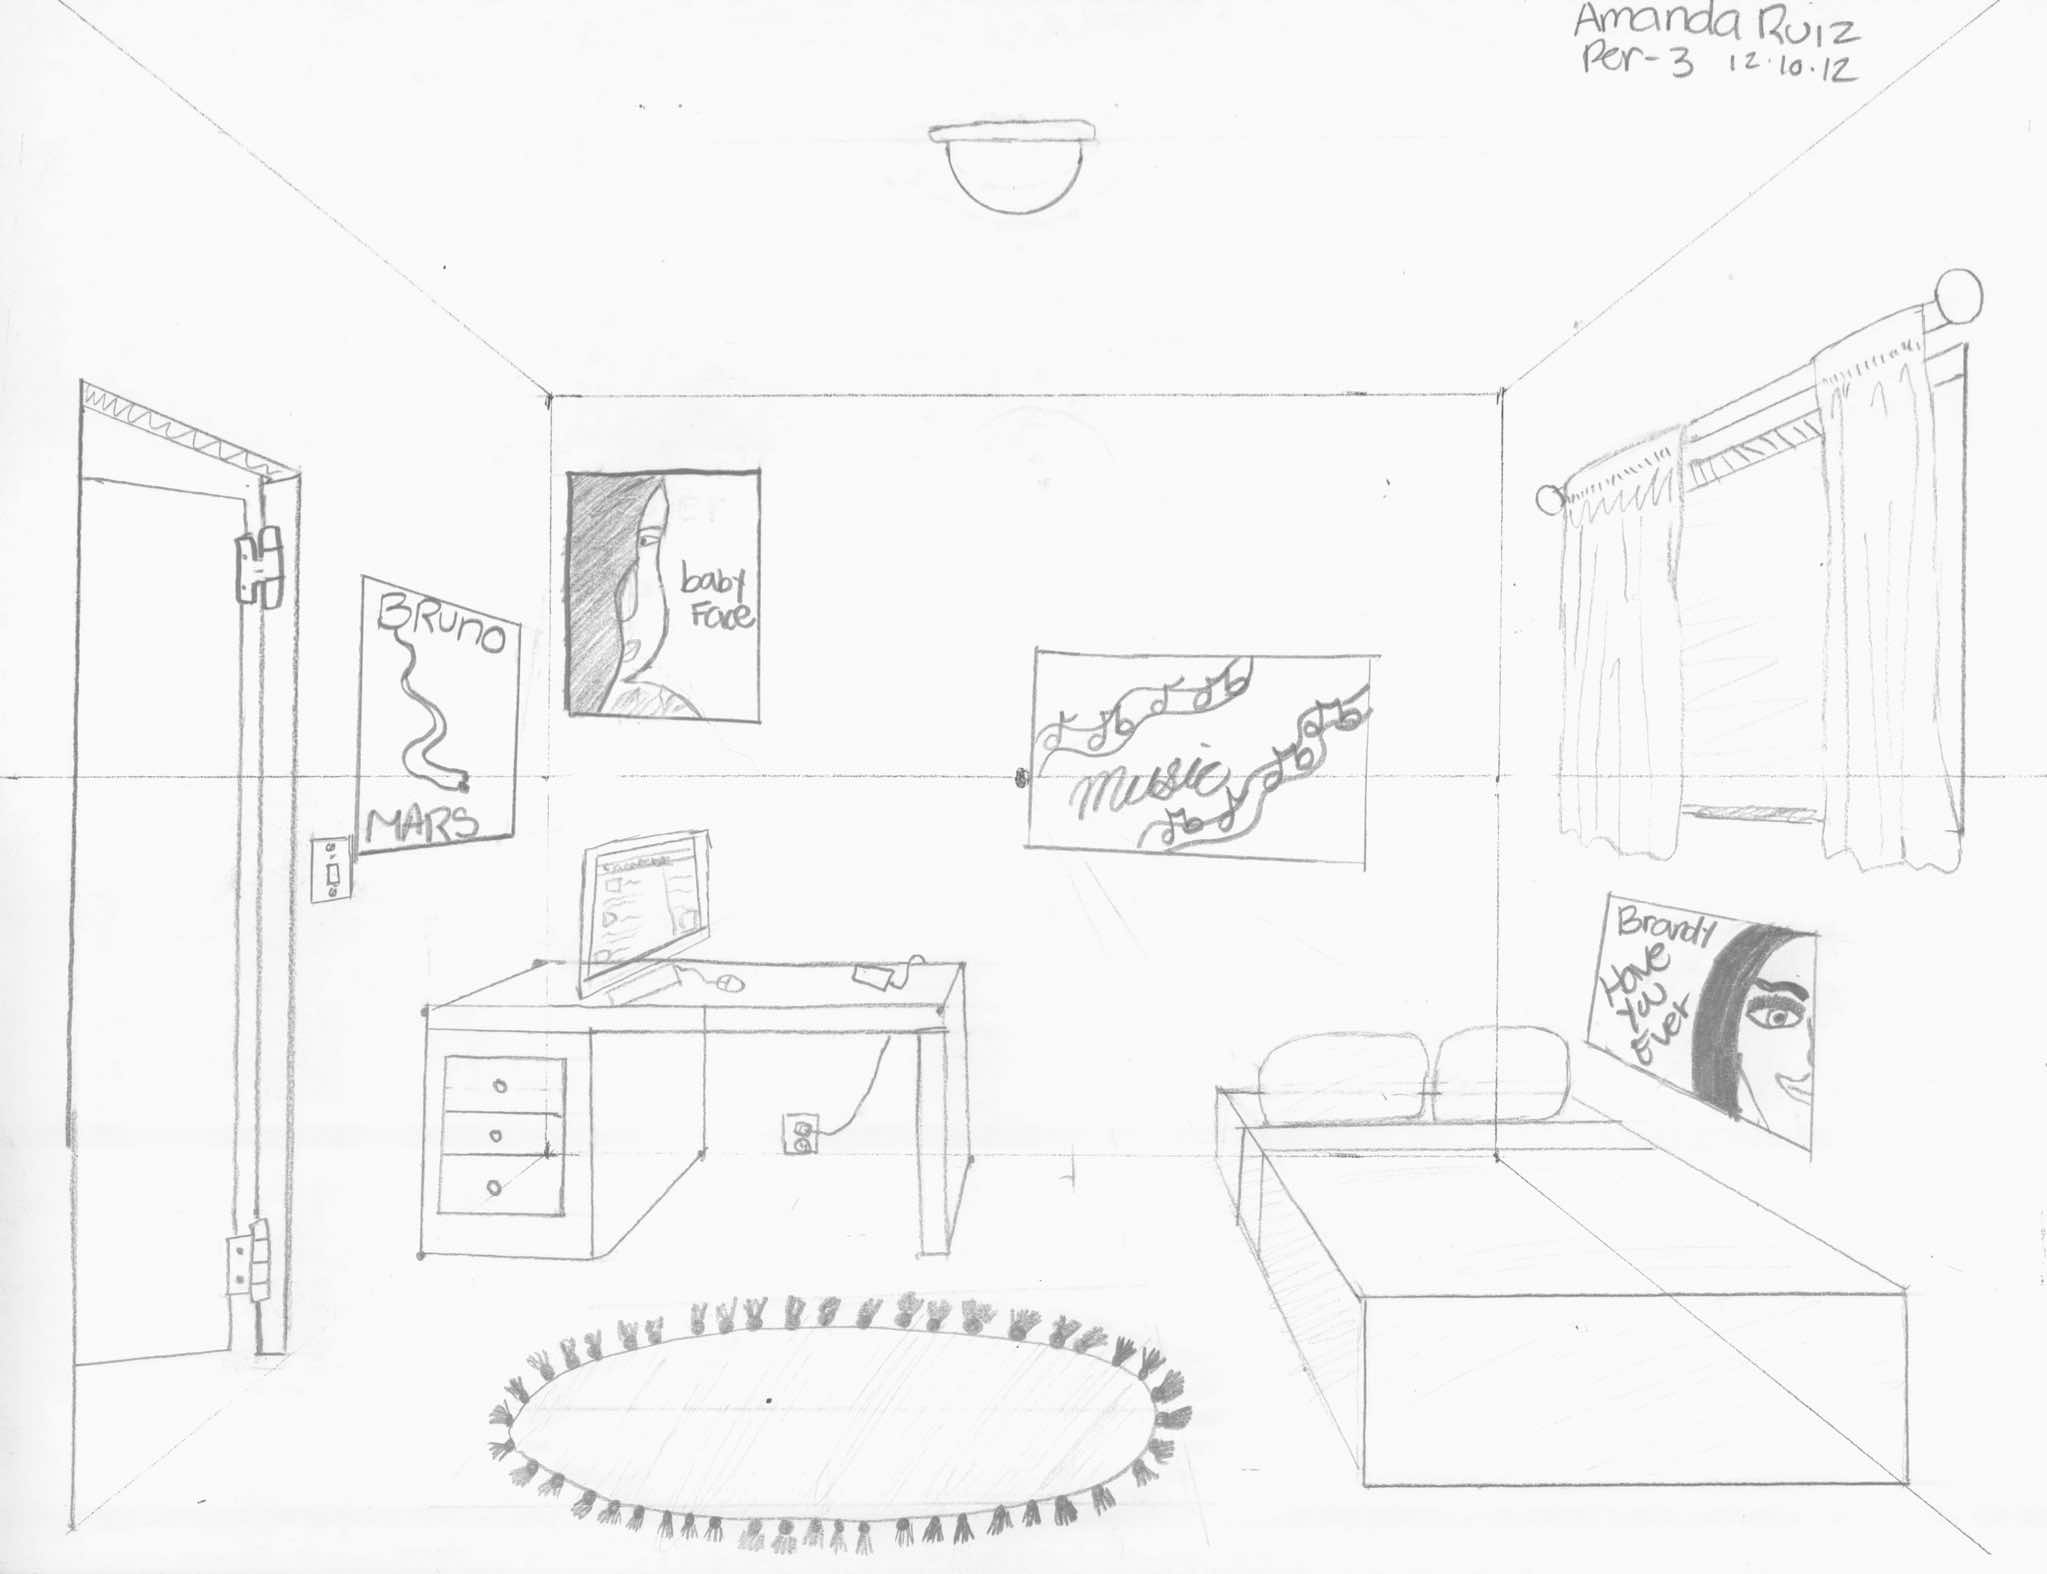 2047x1574 Jghs 2012 2013 Perspective Drawings